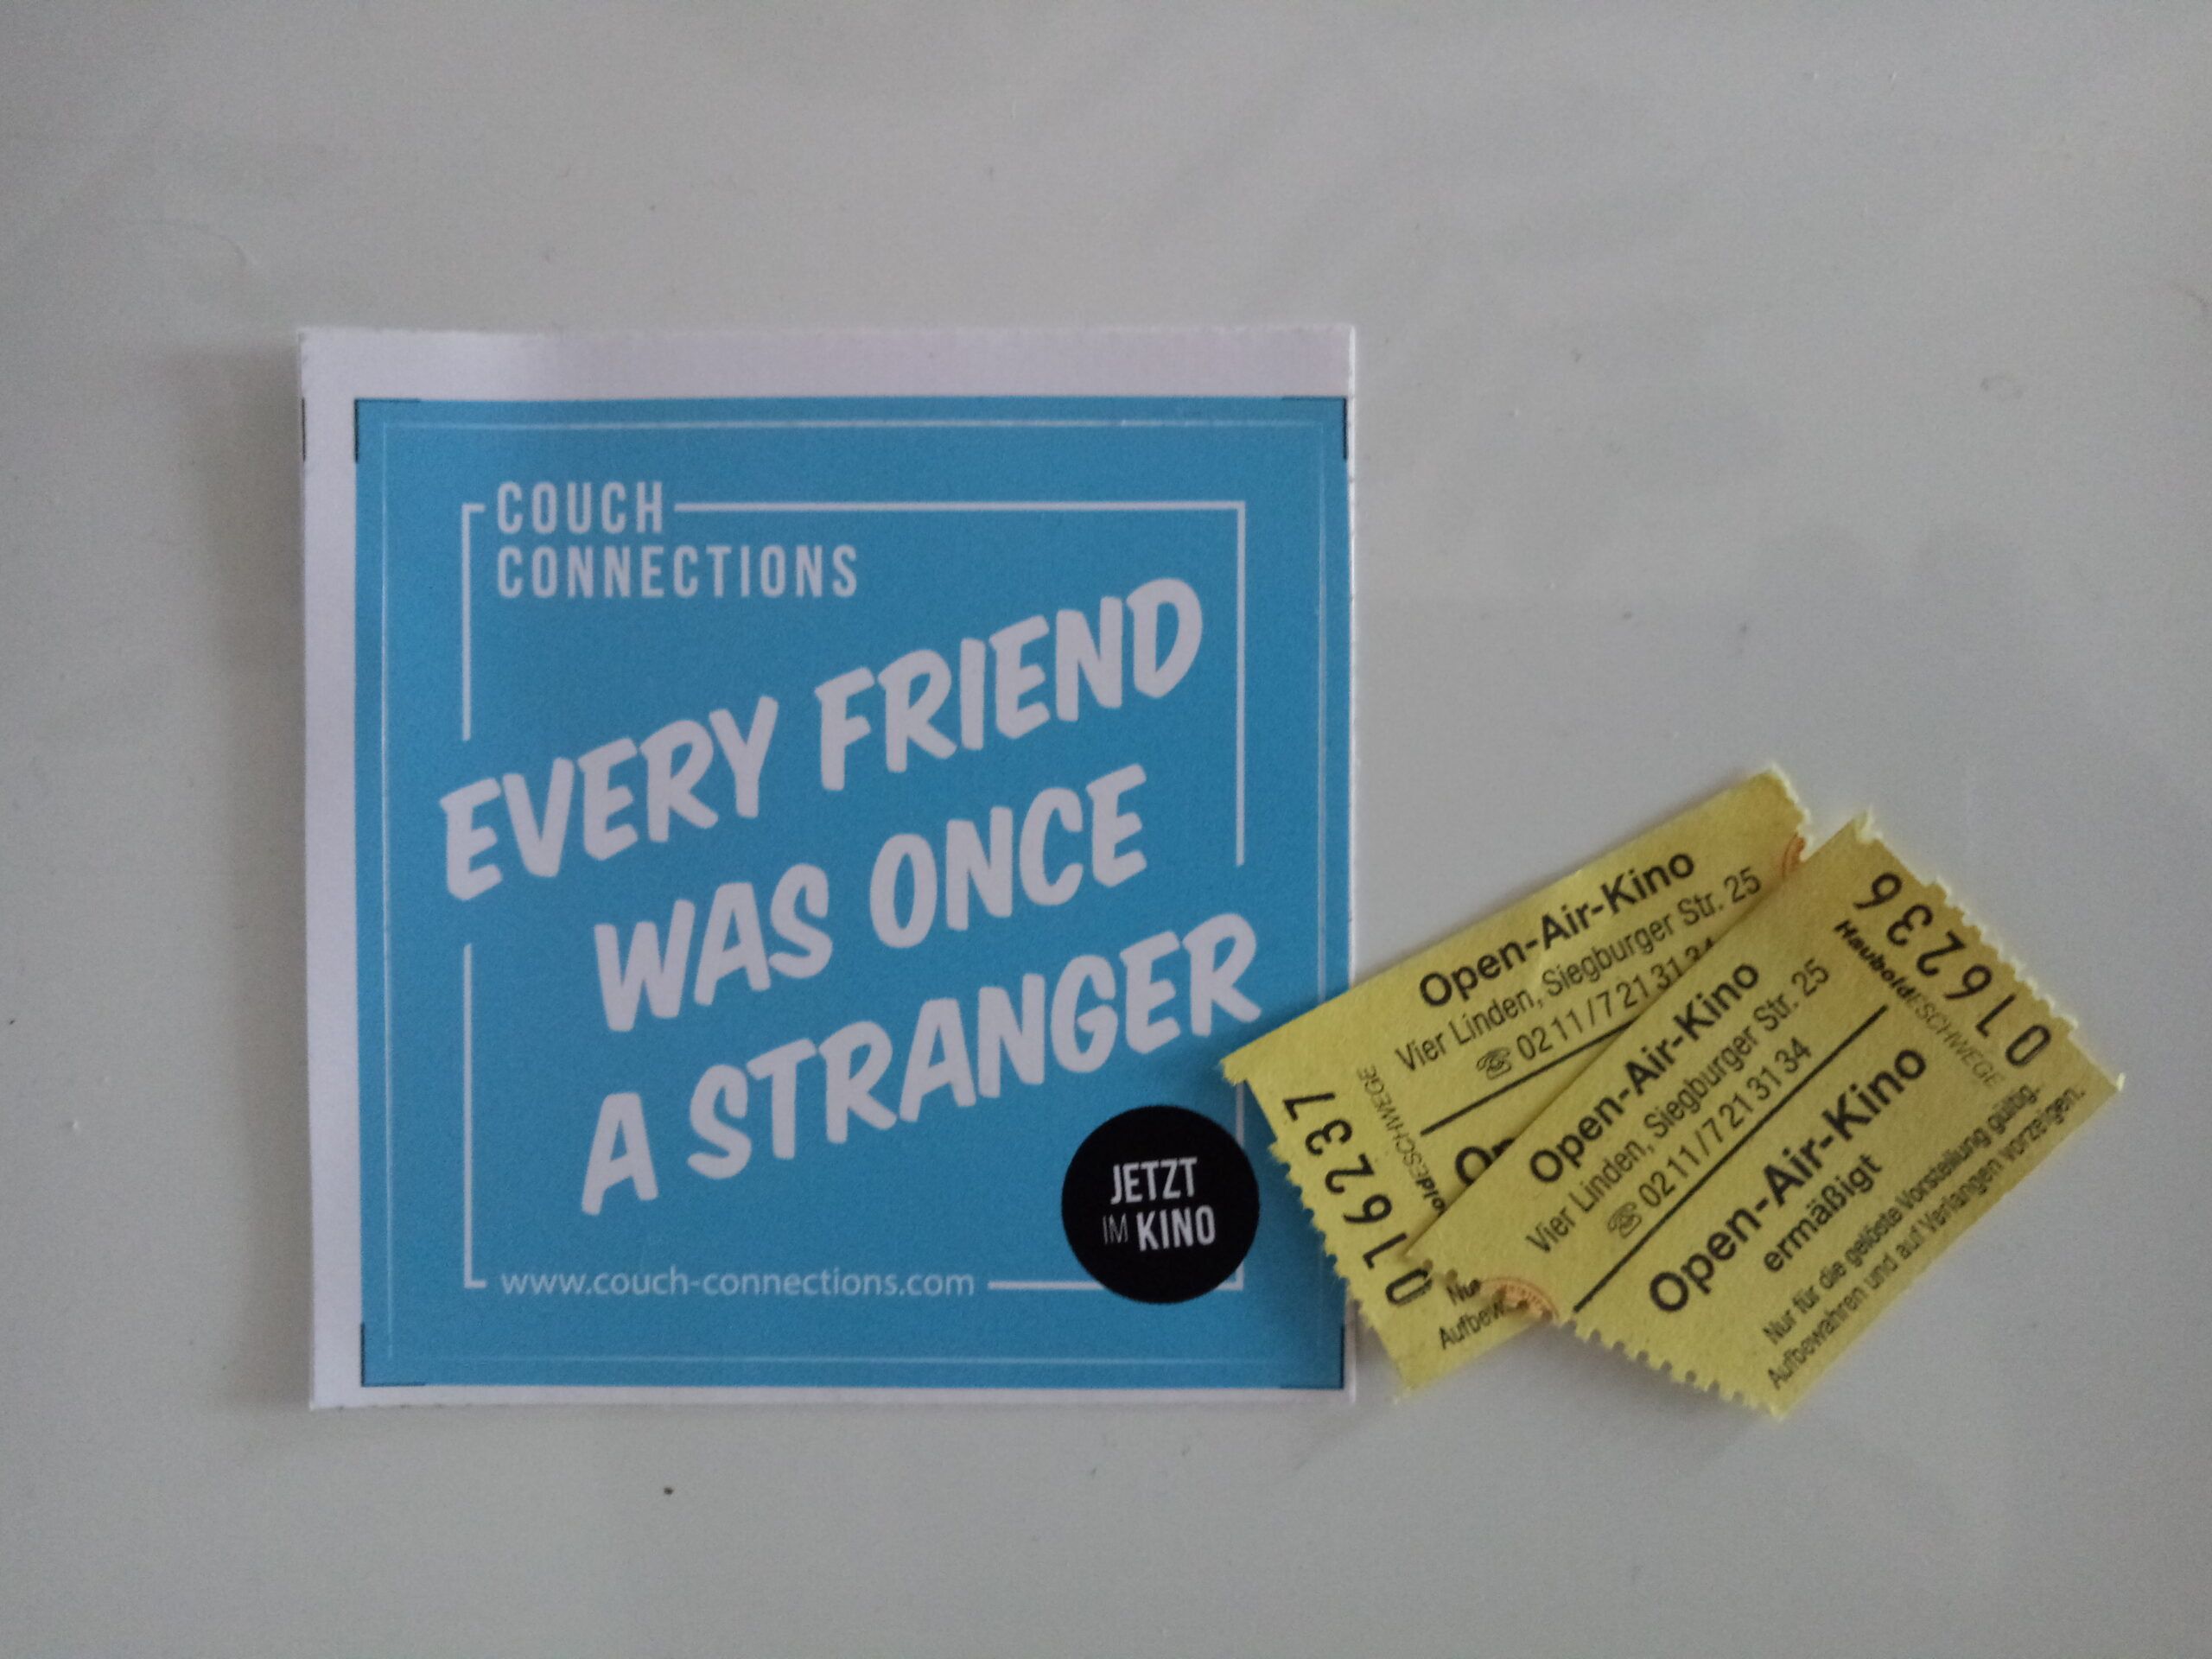 "Kinotickets und Aufkleber ""Every Friend was once a Stranger"""